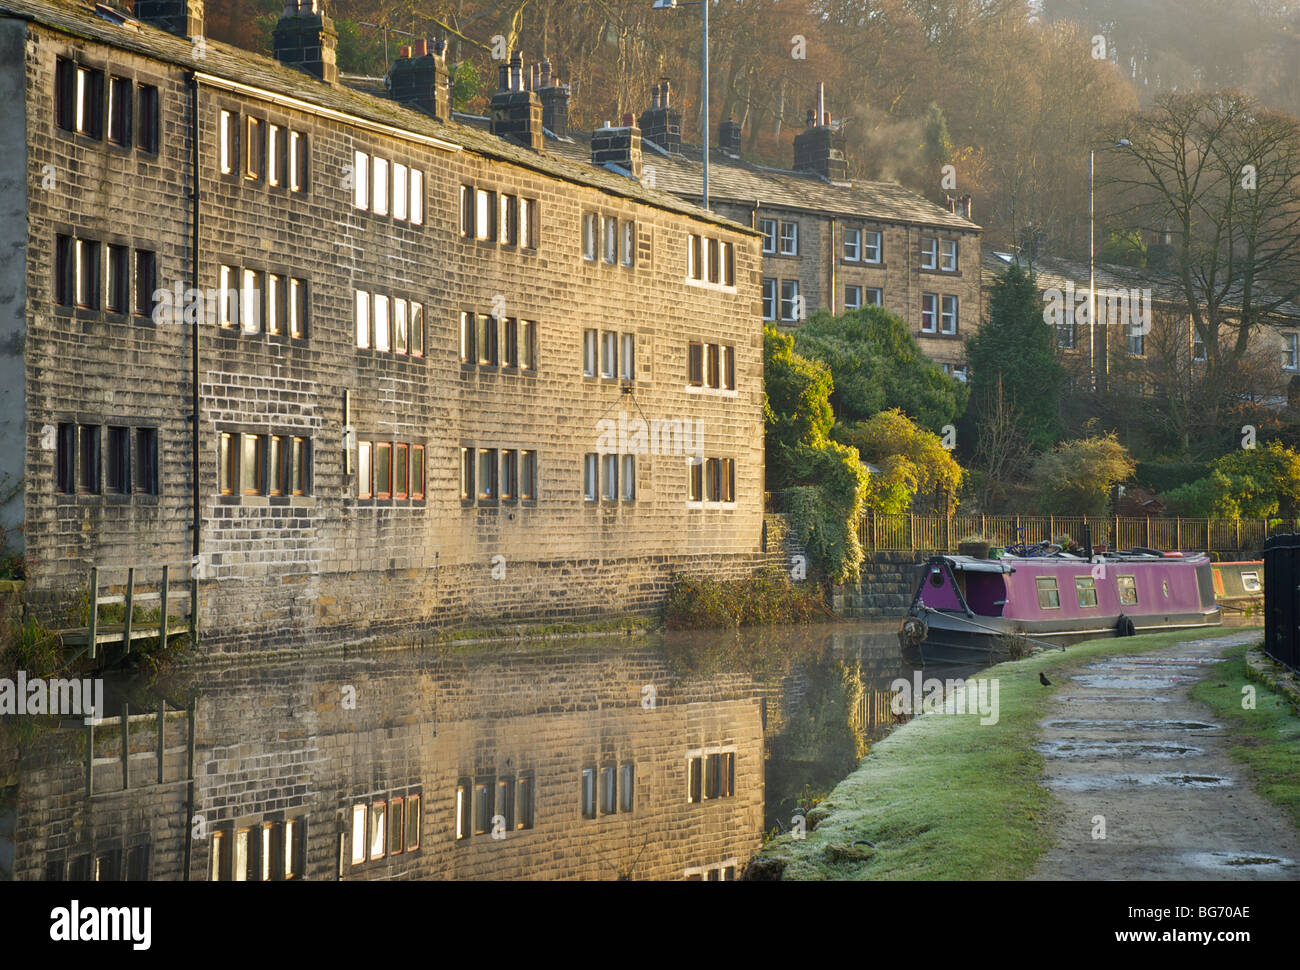 The Rochdale Canal, Hebden Bridge, Calderdale, West Yorkshire, England UK - Stock Image